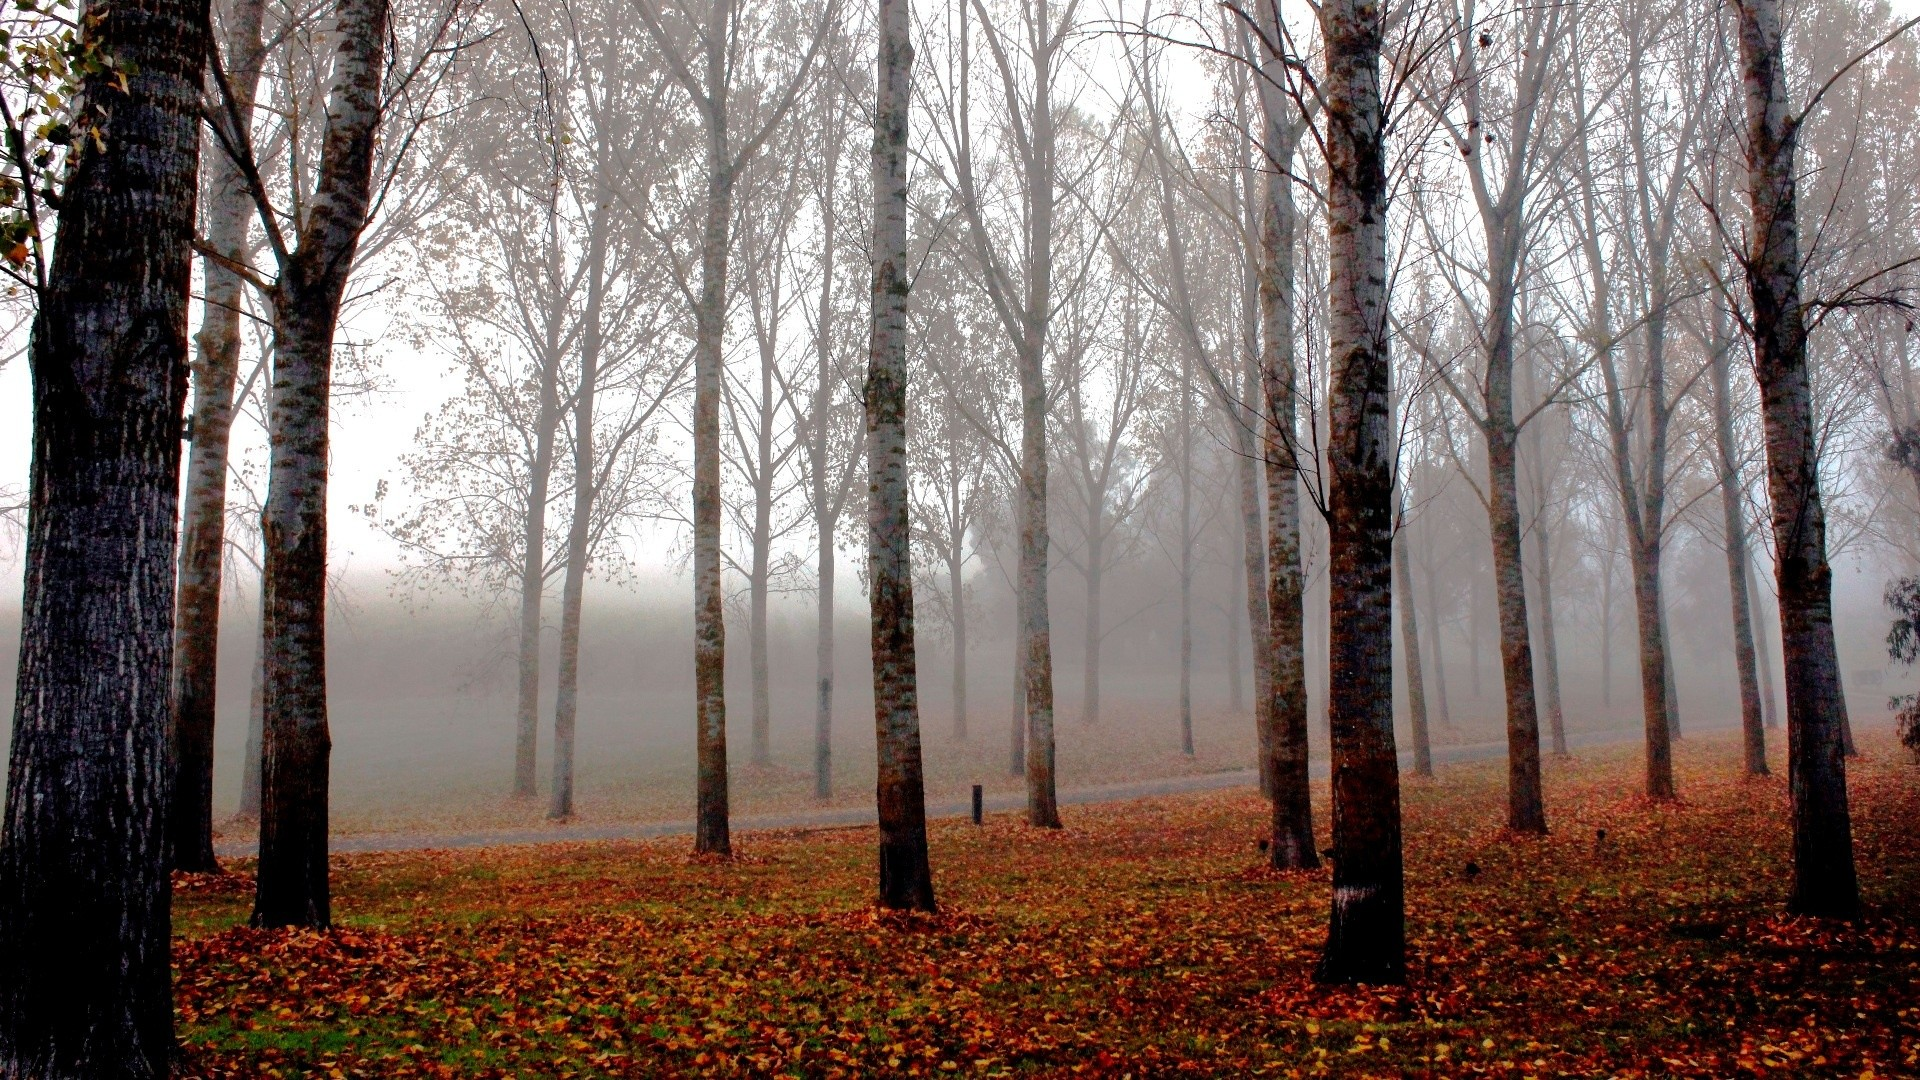 Free Widescreen Wallpaper Fall Early Fall Desktop Wallpapers 43 Images